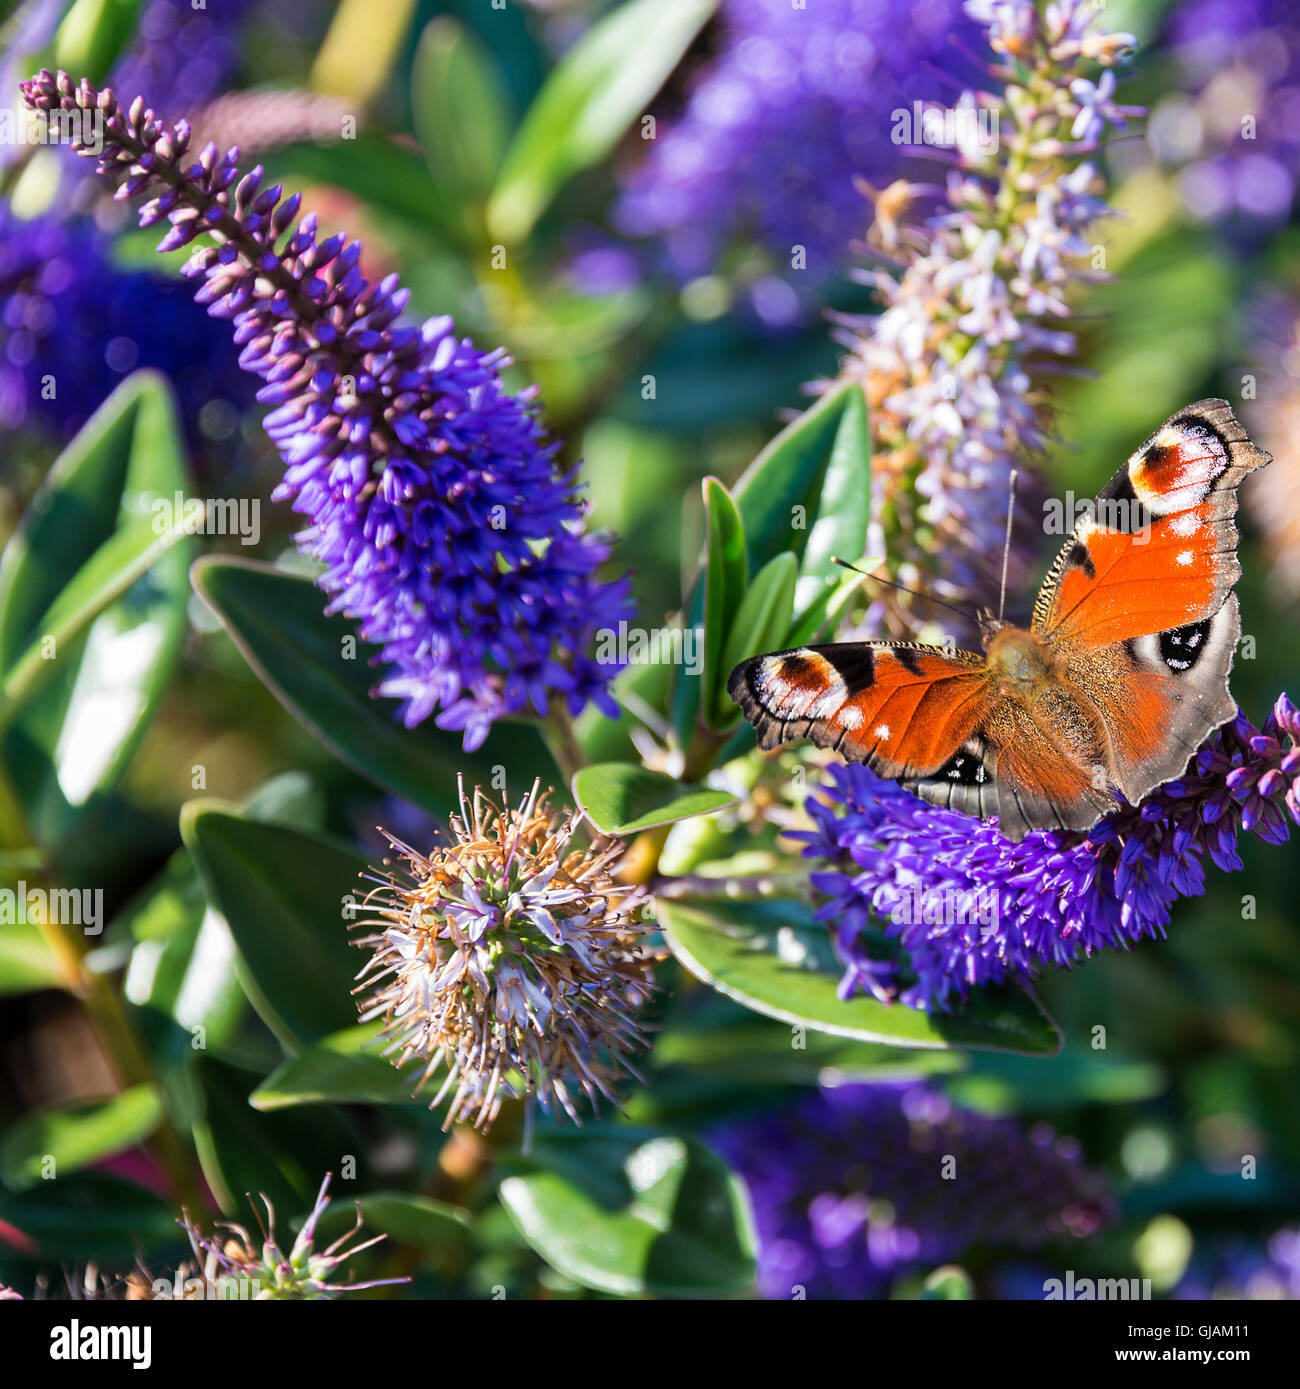 a beautiful peacock butterfly on a blue hebe flower in a garden at